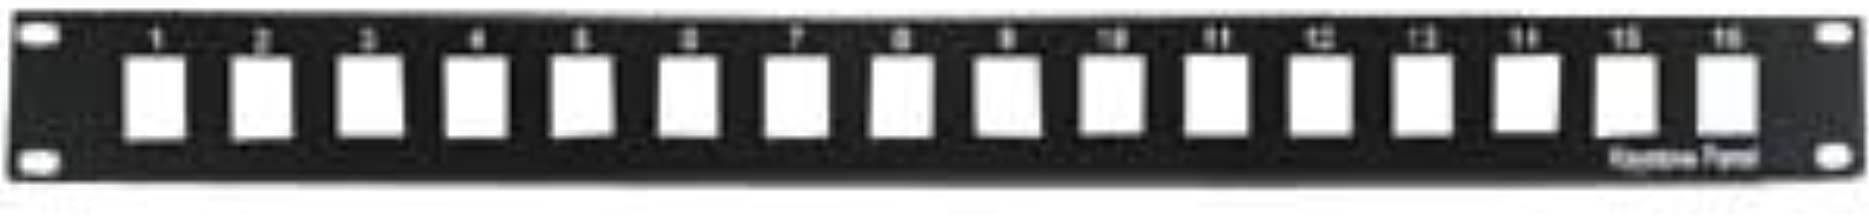 "InstallerParts 1U 19"" 16Port Blank Panel for Keystone Jack"